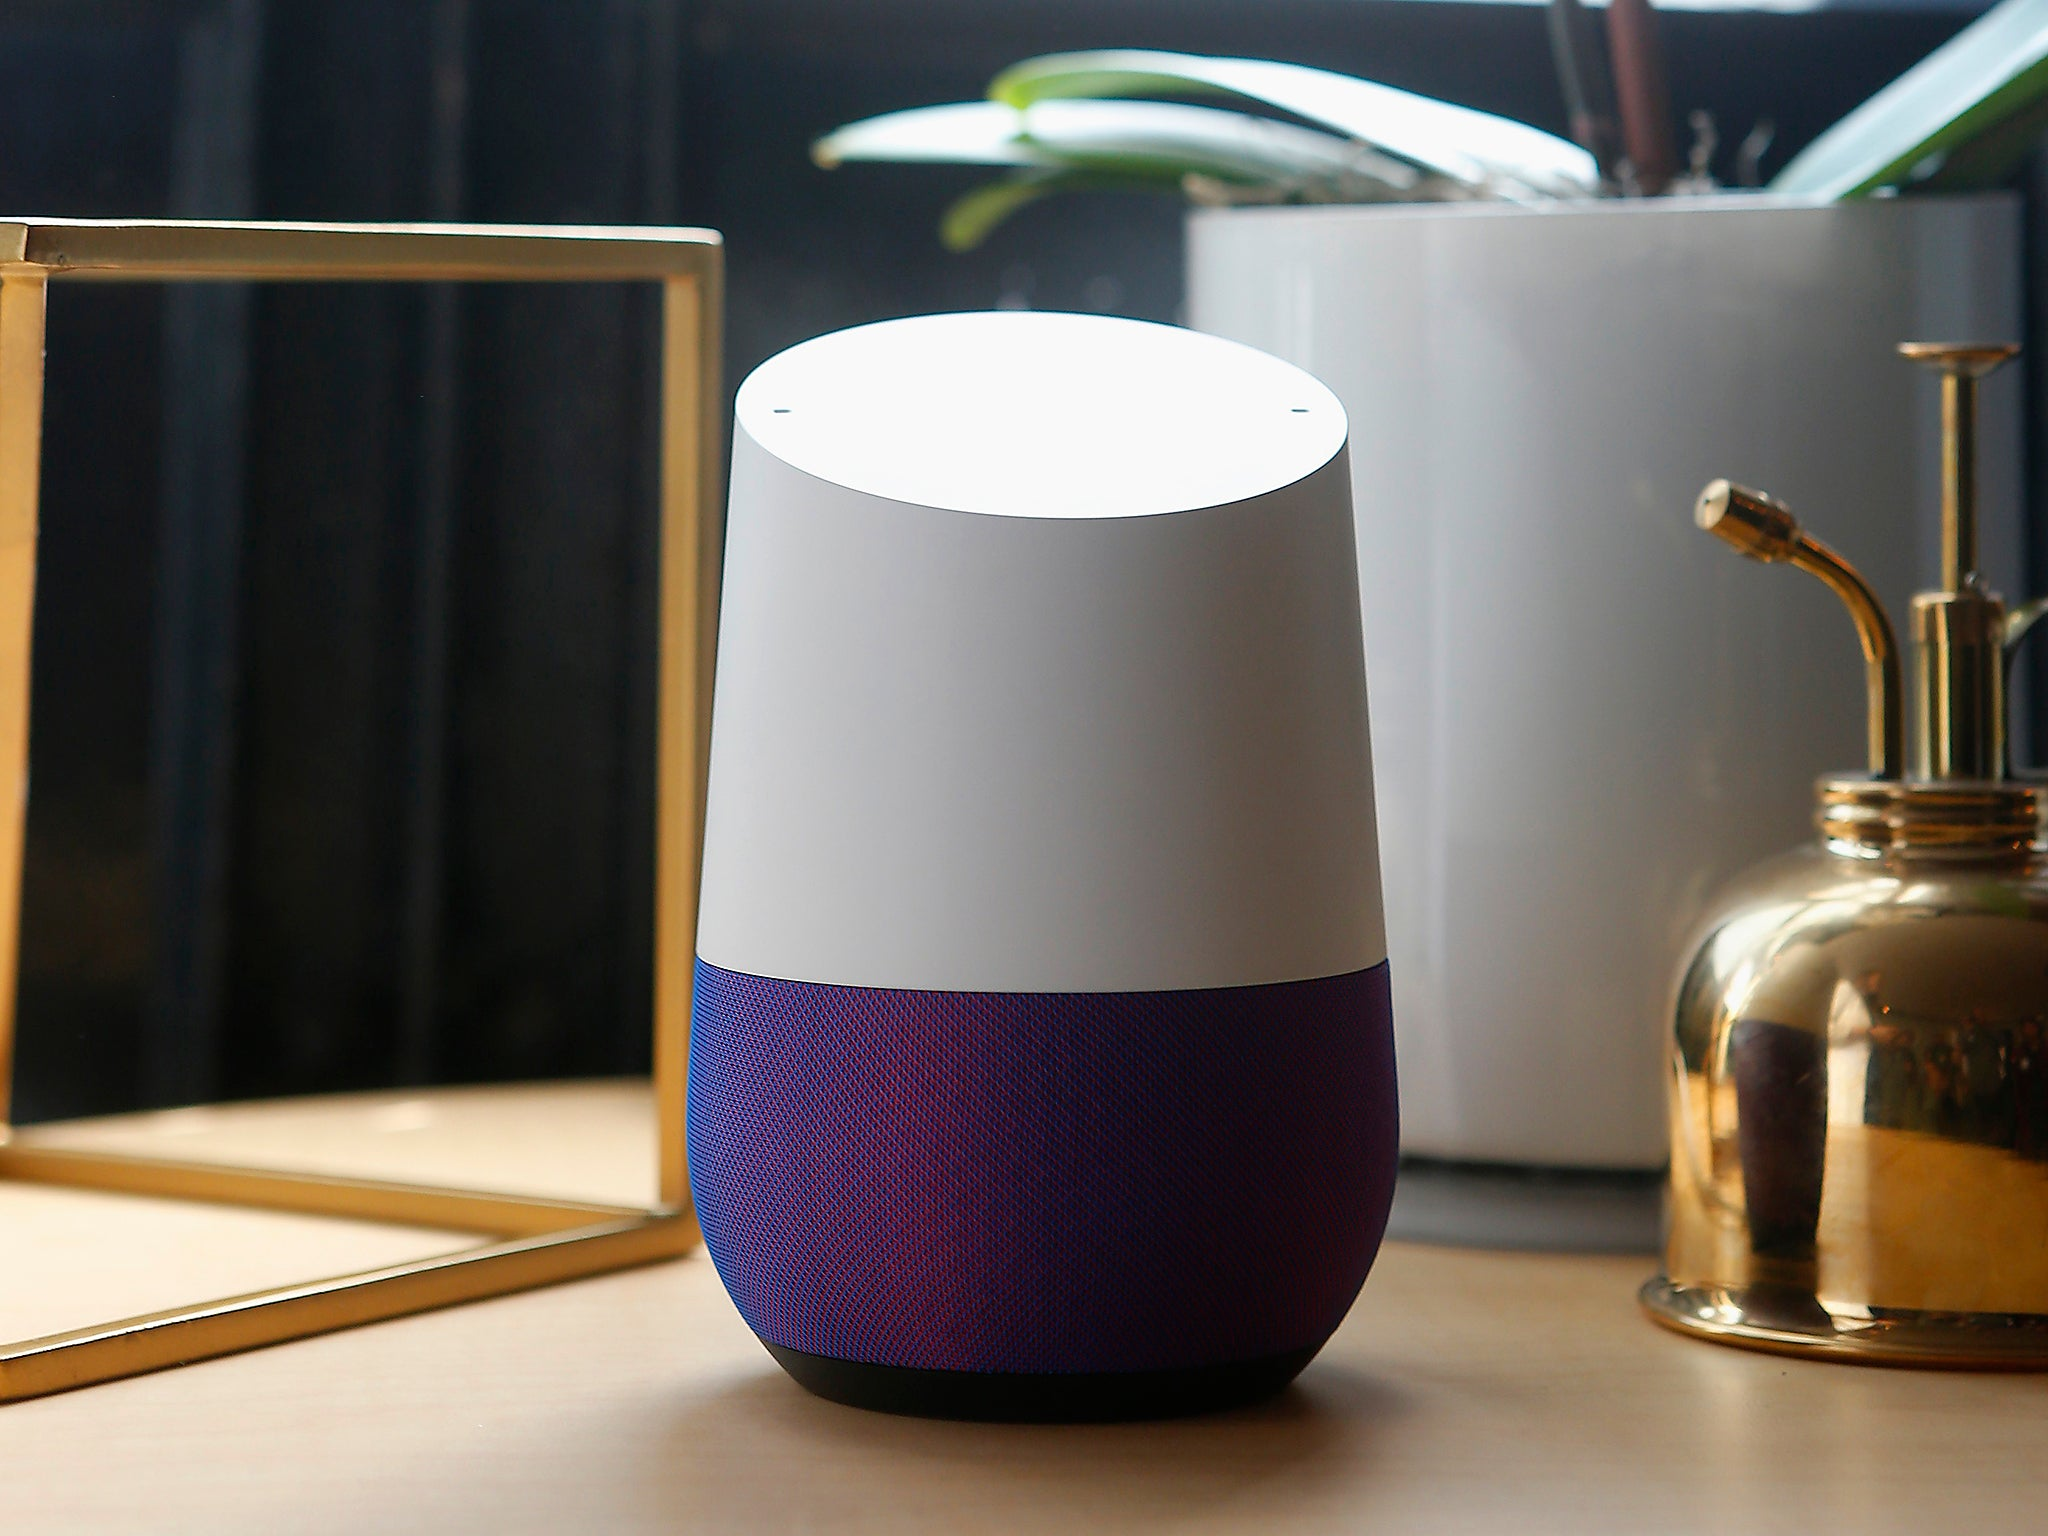 Google Home Review: An AI Butler That Could Change Your Life | The  Independent